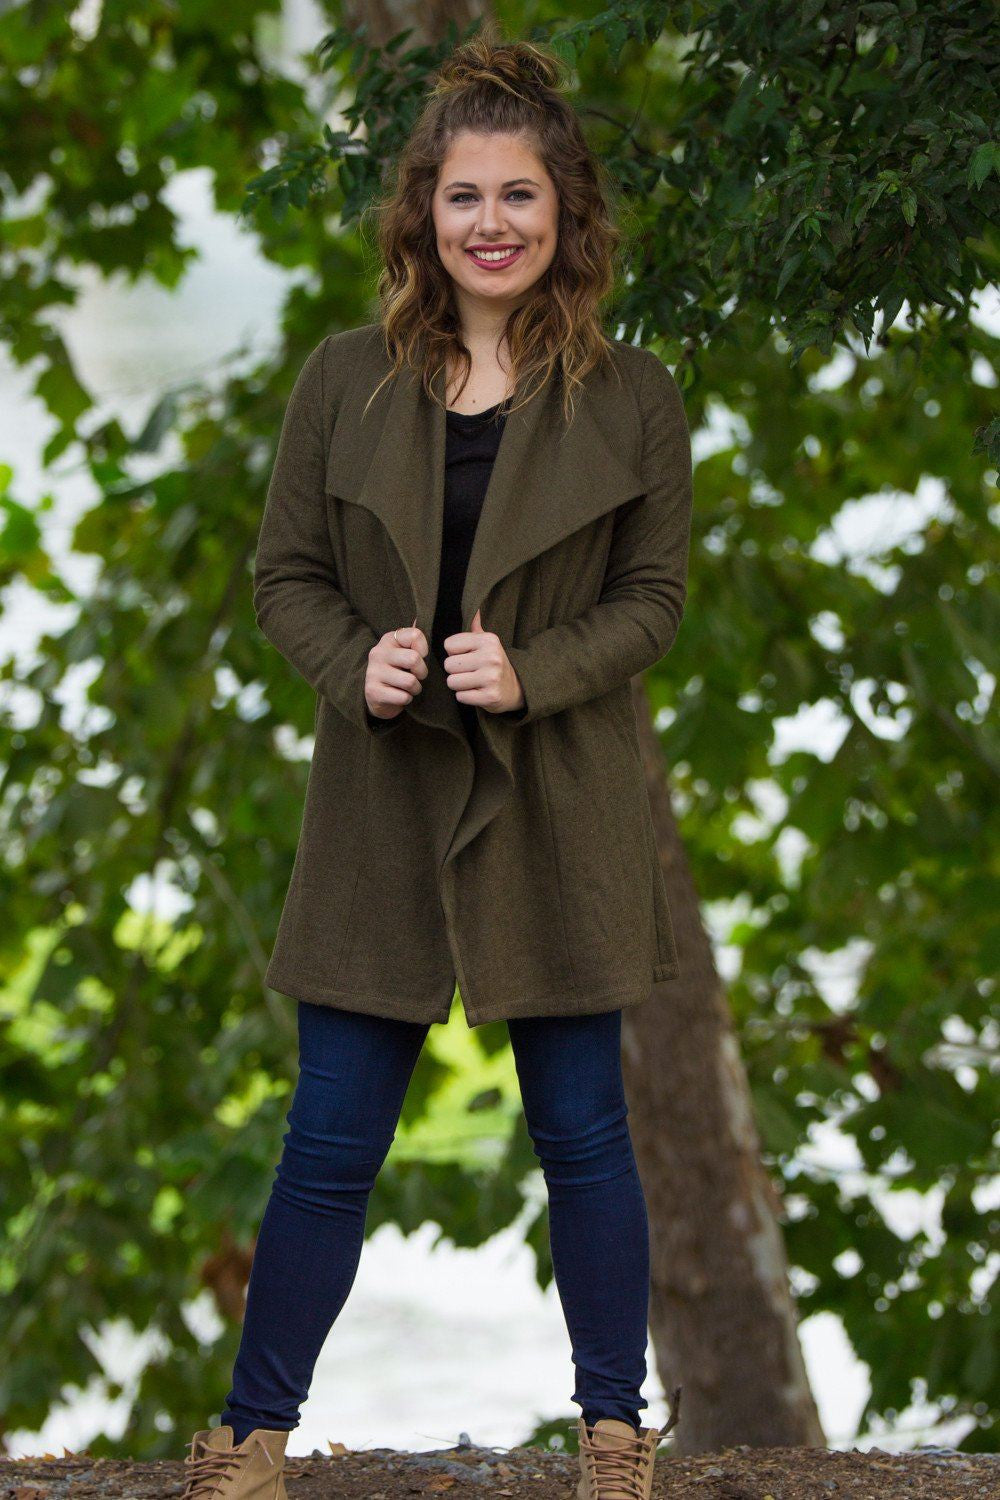 Long Sleeve Piko Jacket - Olive - Piko Clothing